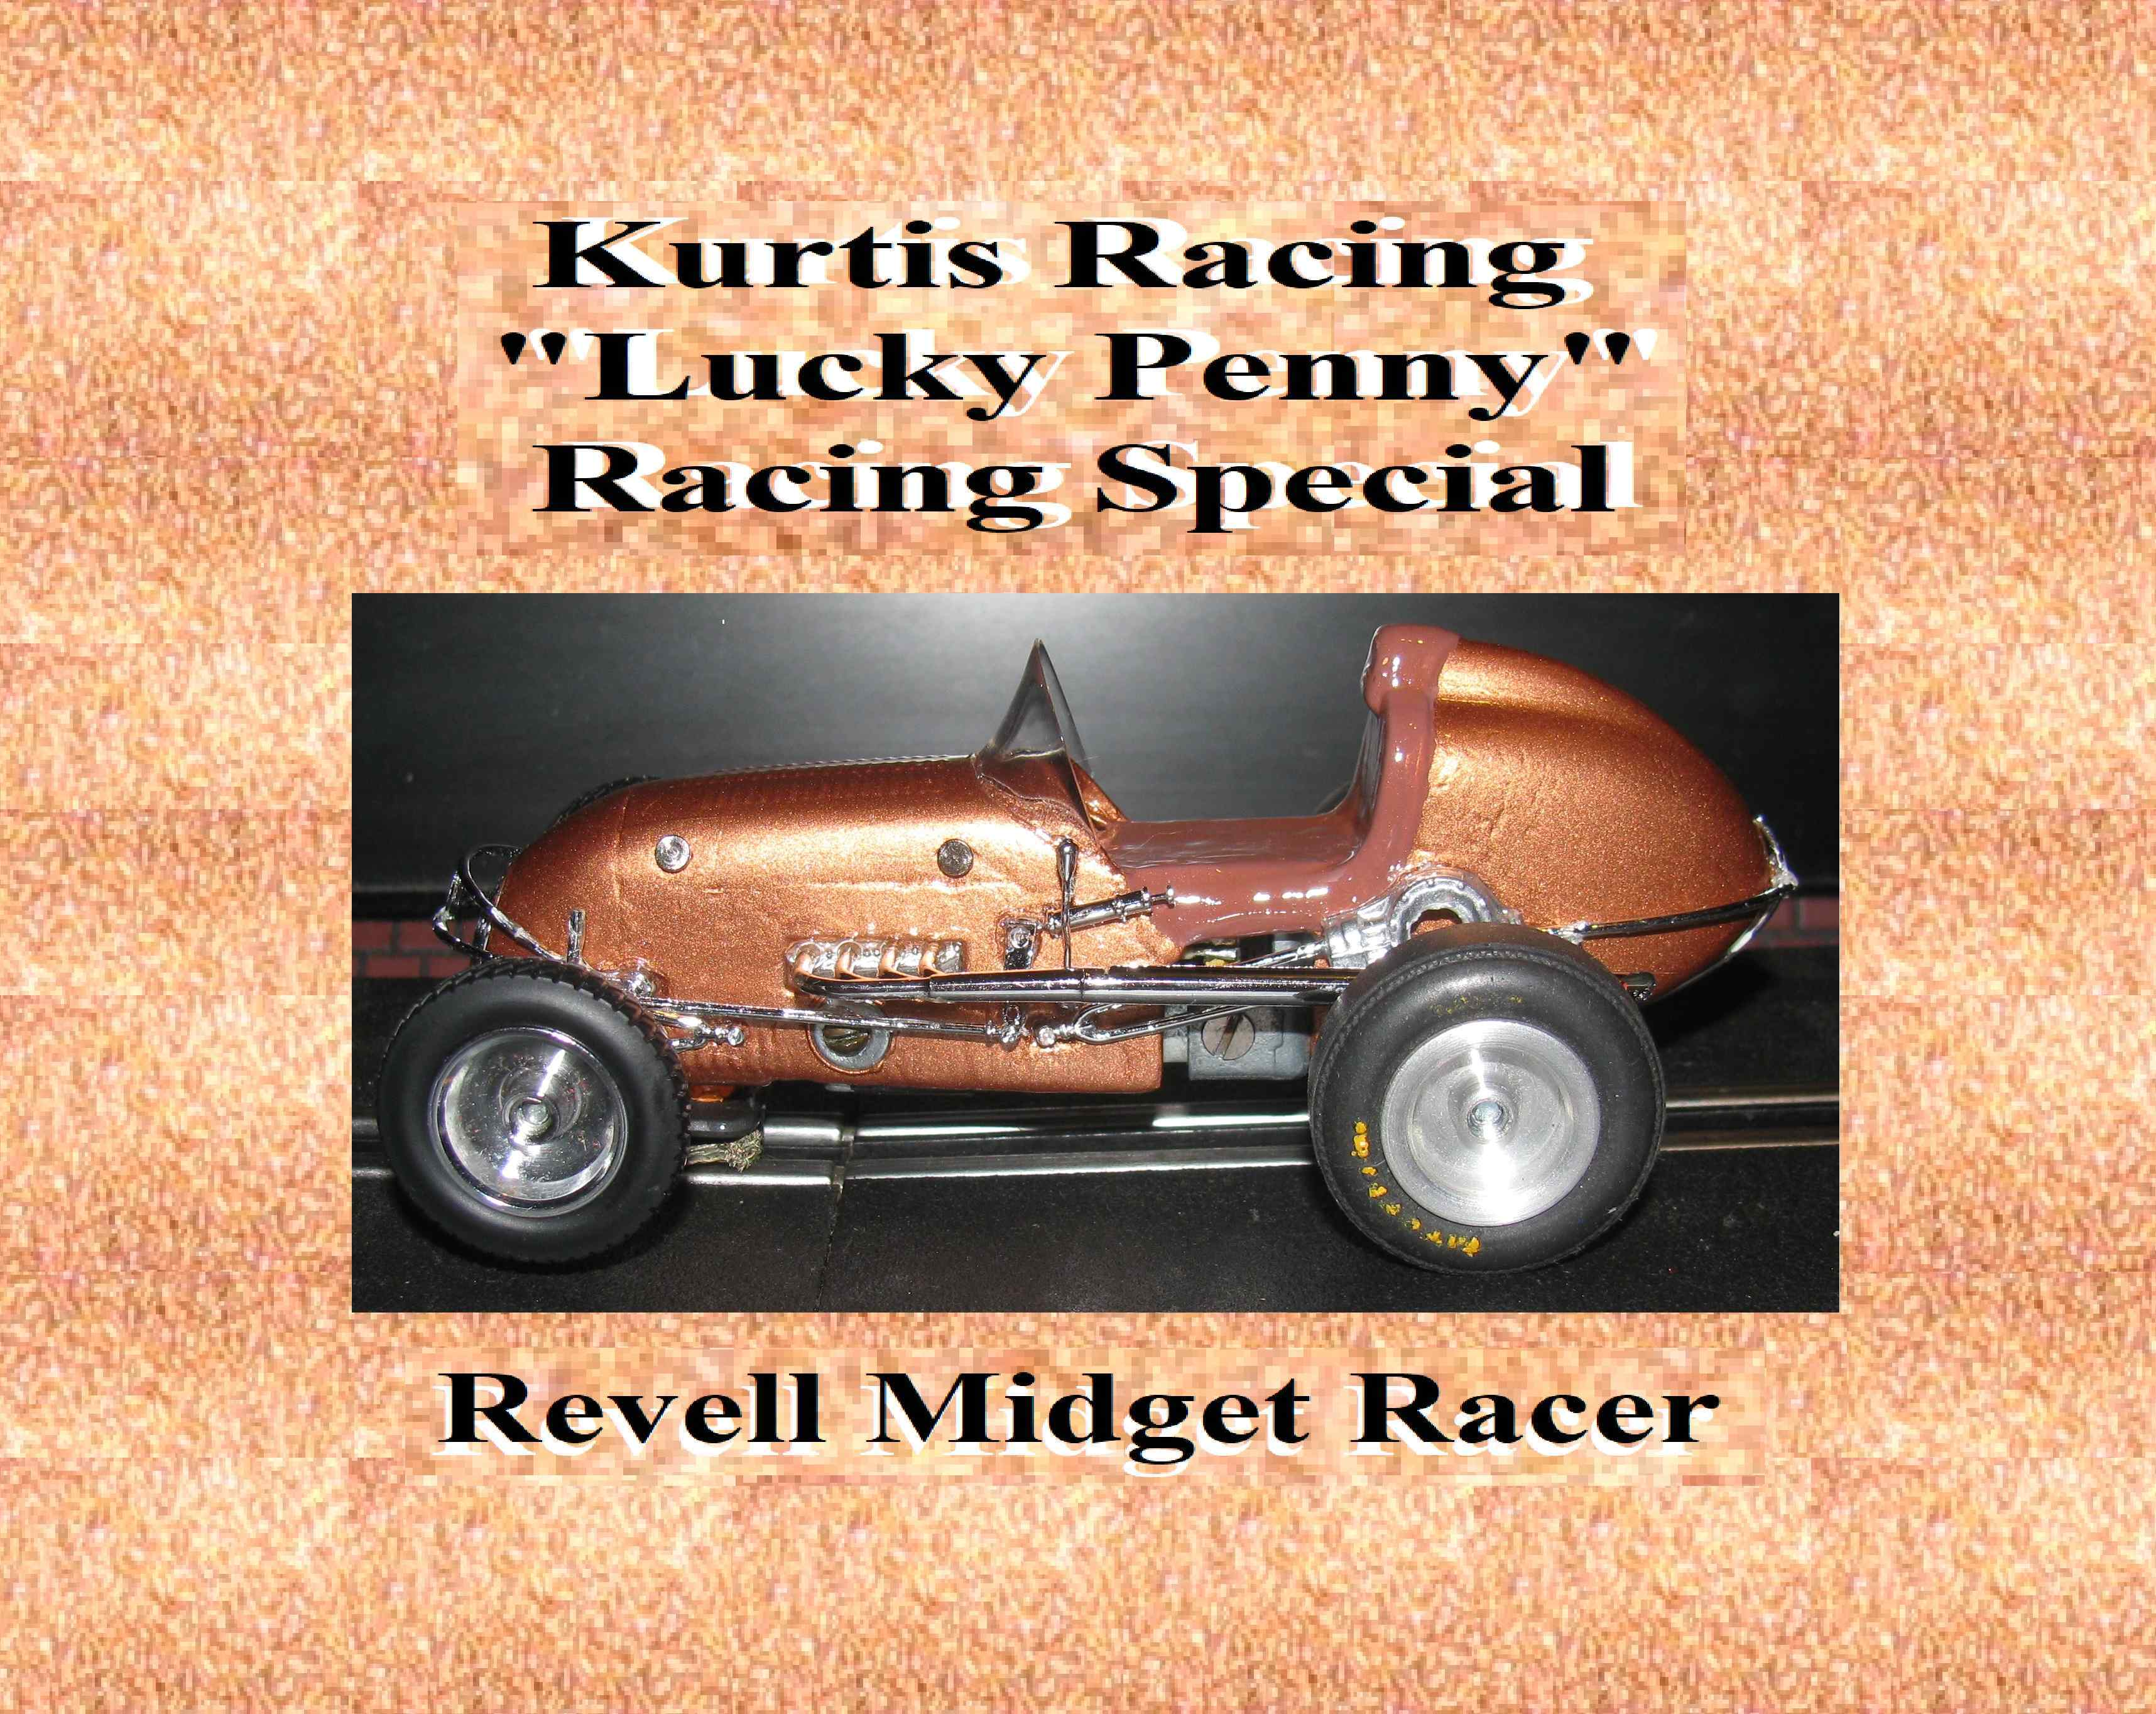 "*SOLD* * SPECIAL EASTER PRICE FOR CHARLES E.* Revell Midget Racer ""Lucky Penny"" Racing Special Slot Car 1:32 Scale"